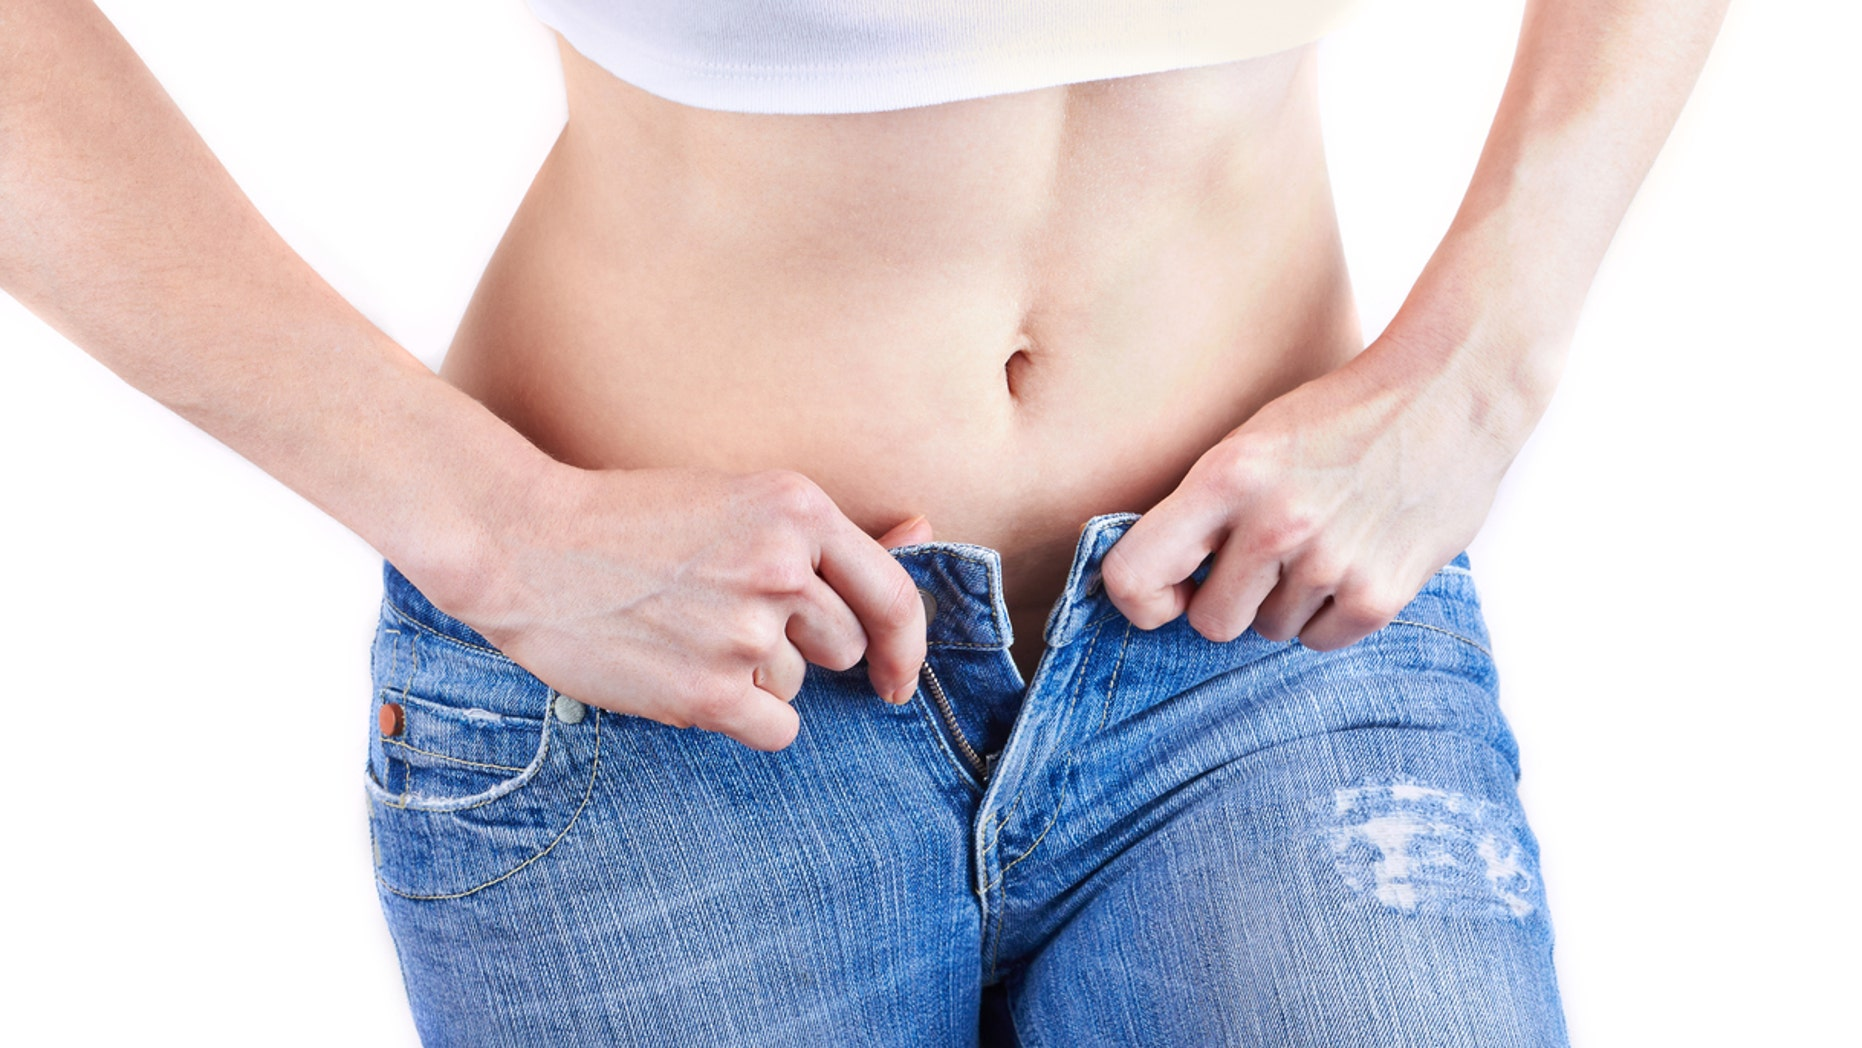 Overweight woman wearing jeans